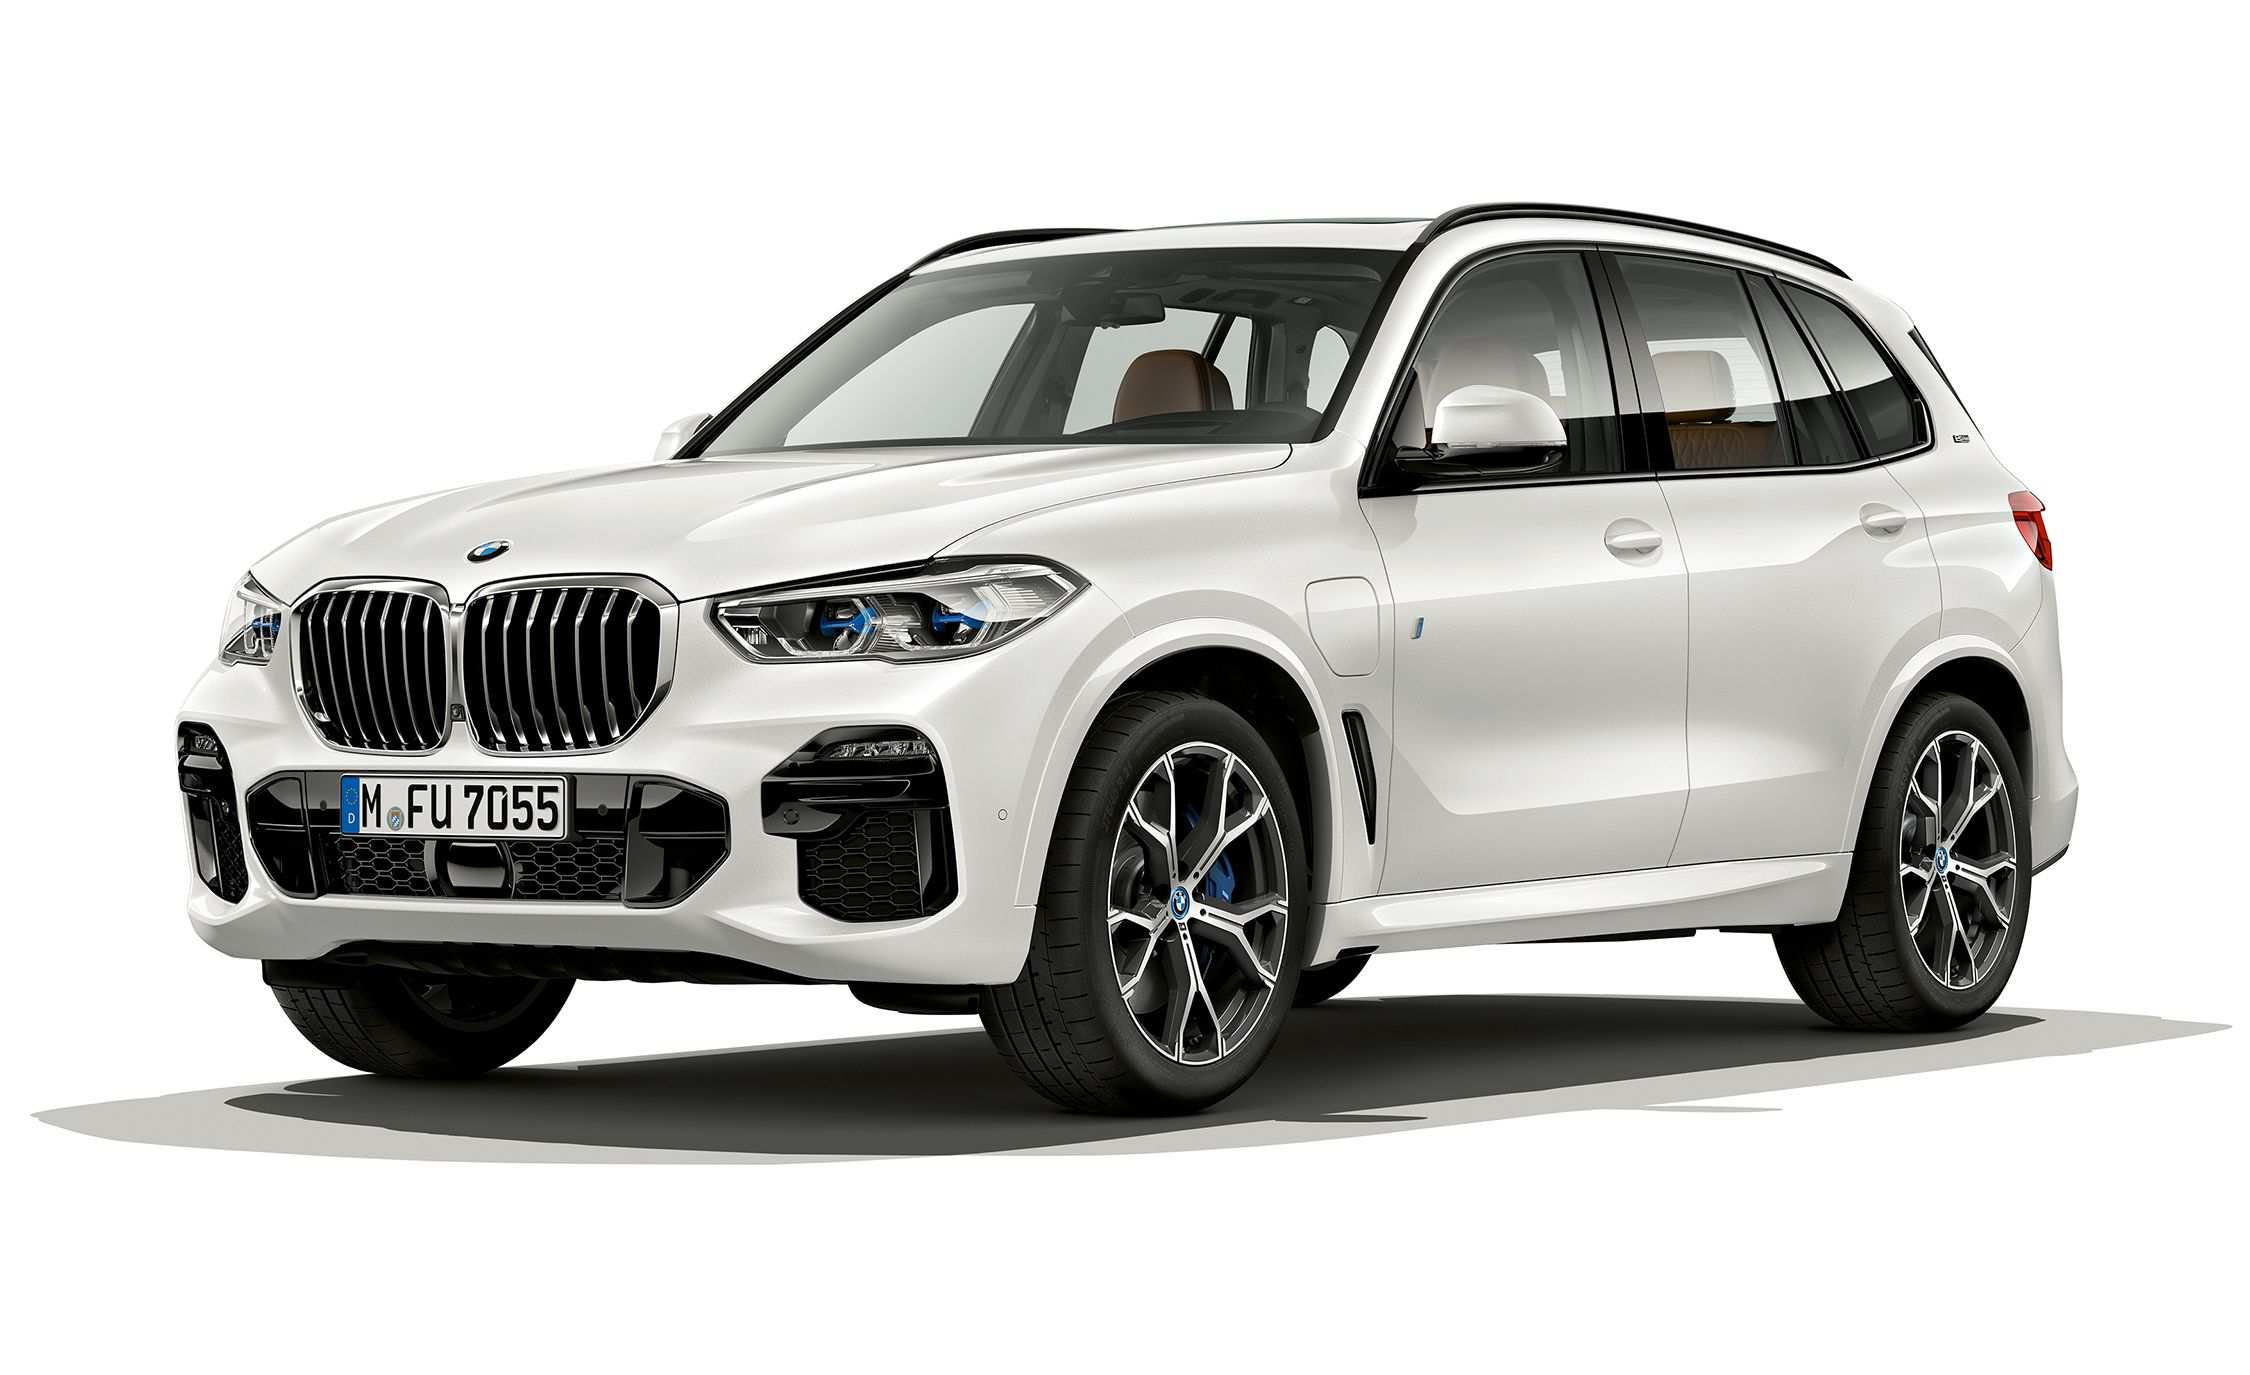 75 A BMW Hybrid Suv 2020 Price And Review